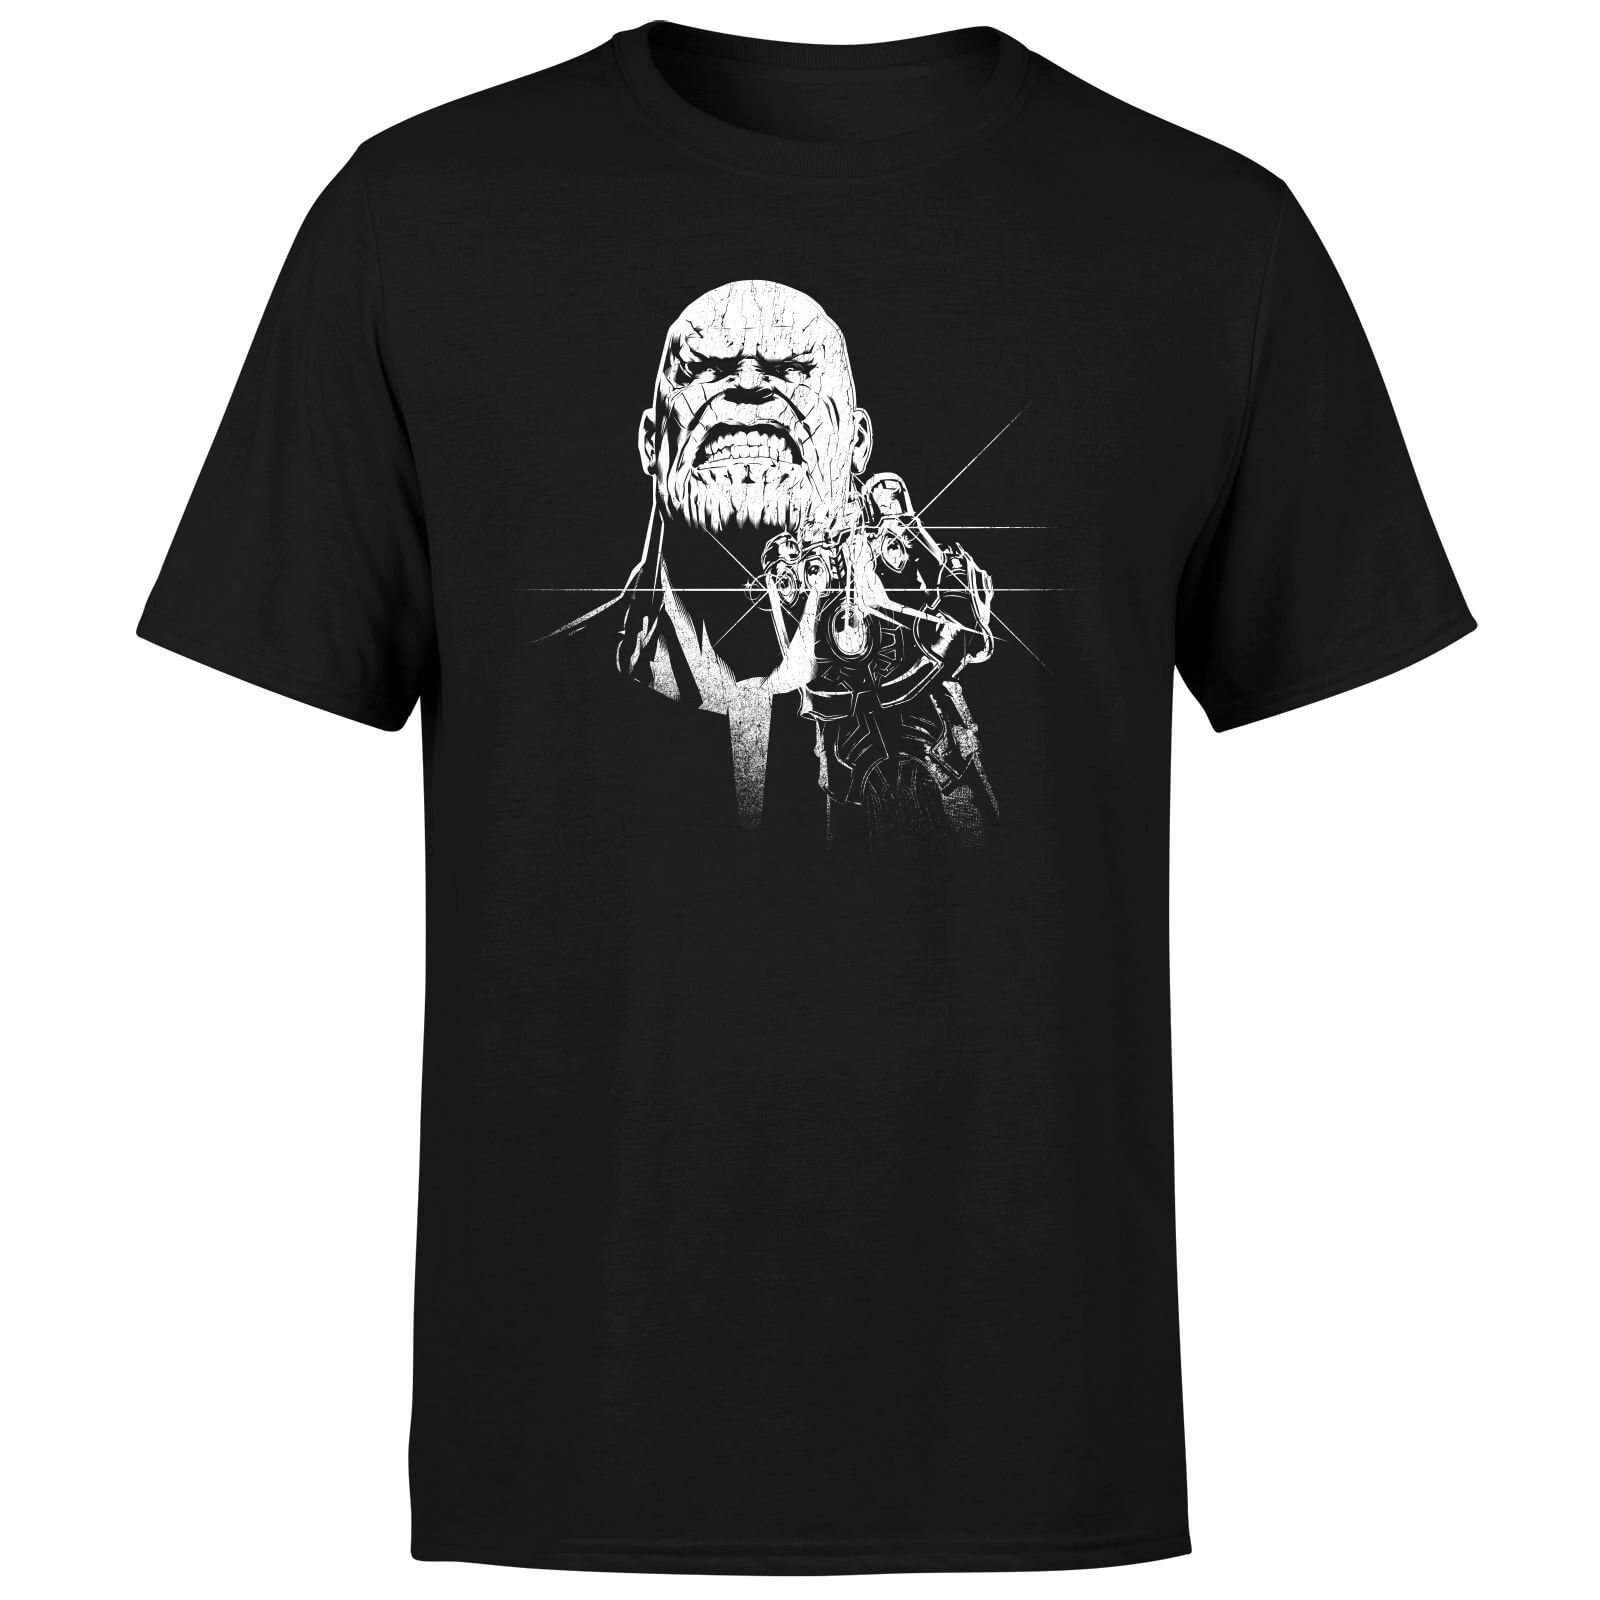 Marvel Avengers Infinity War Fierce Thanos T-Shirt - Black